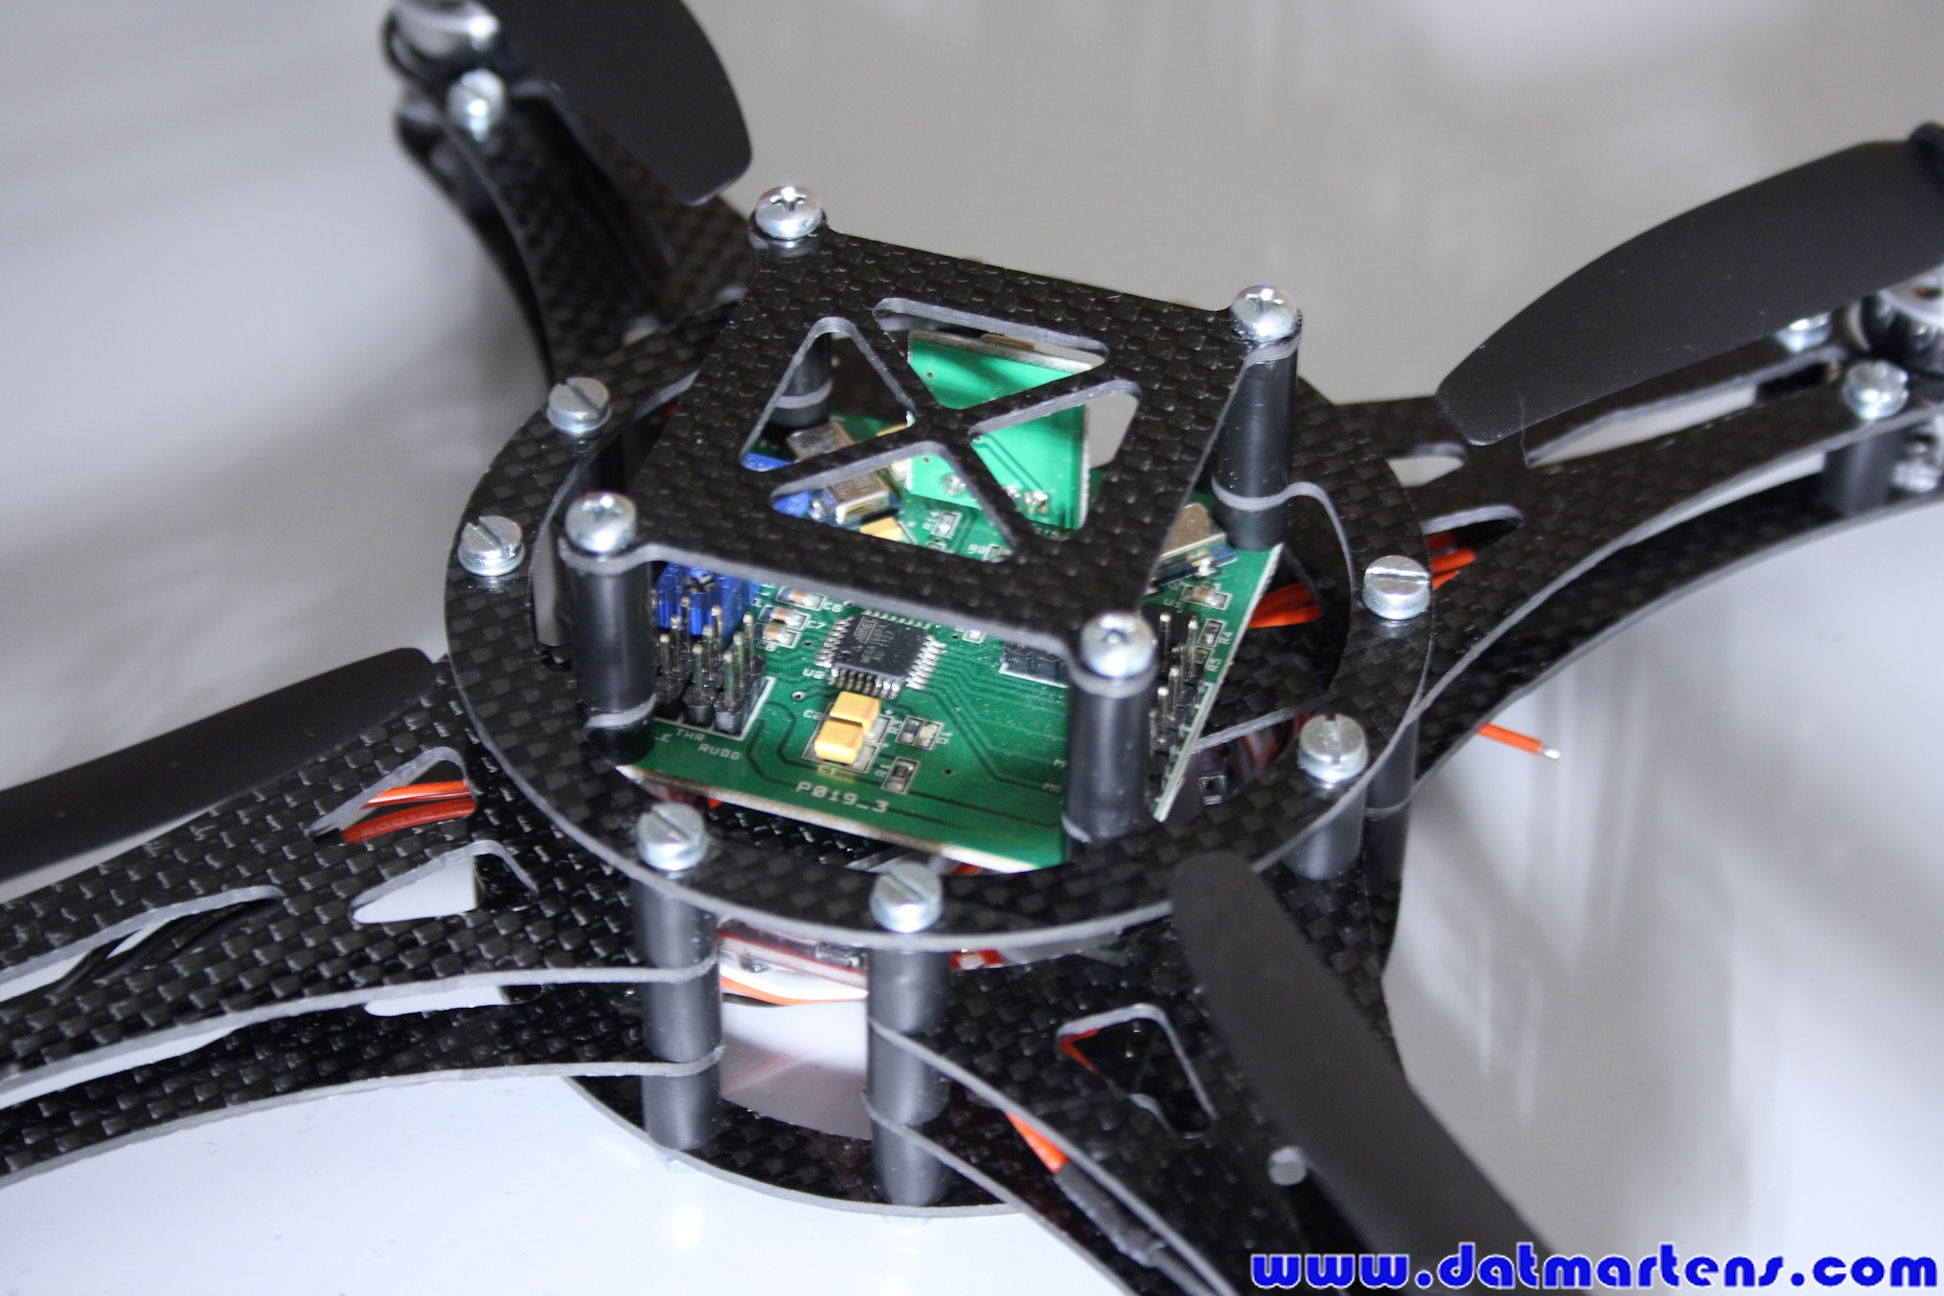 http://gallery.datmartens.com/thumb.php?src=cache%2Falbums%2FProjecten%2FQuadcopter%2FPrototype+2%2FDPP_0172.JPG&size=450&ratio=OAR&save=1